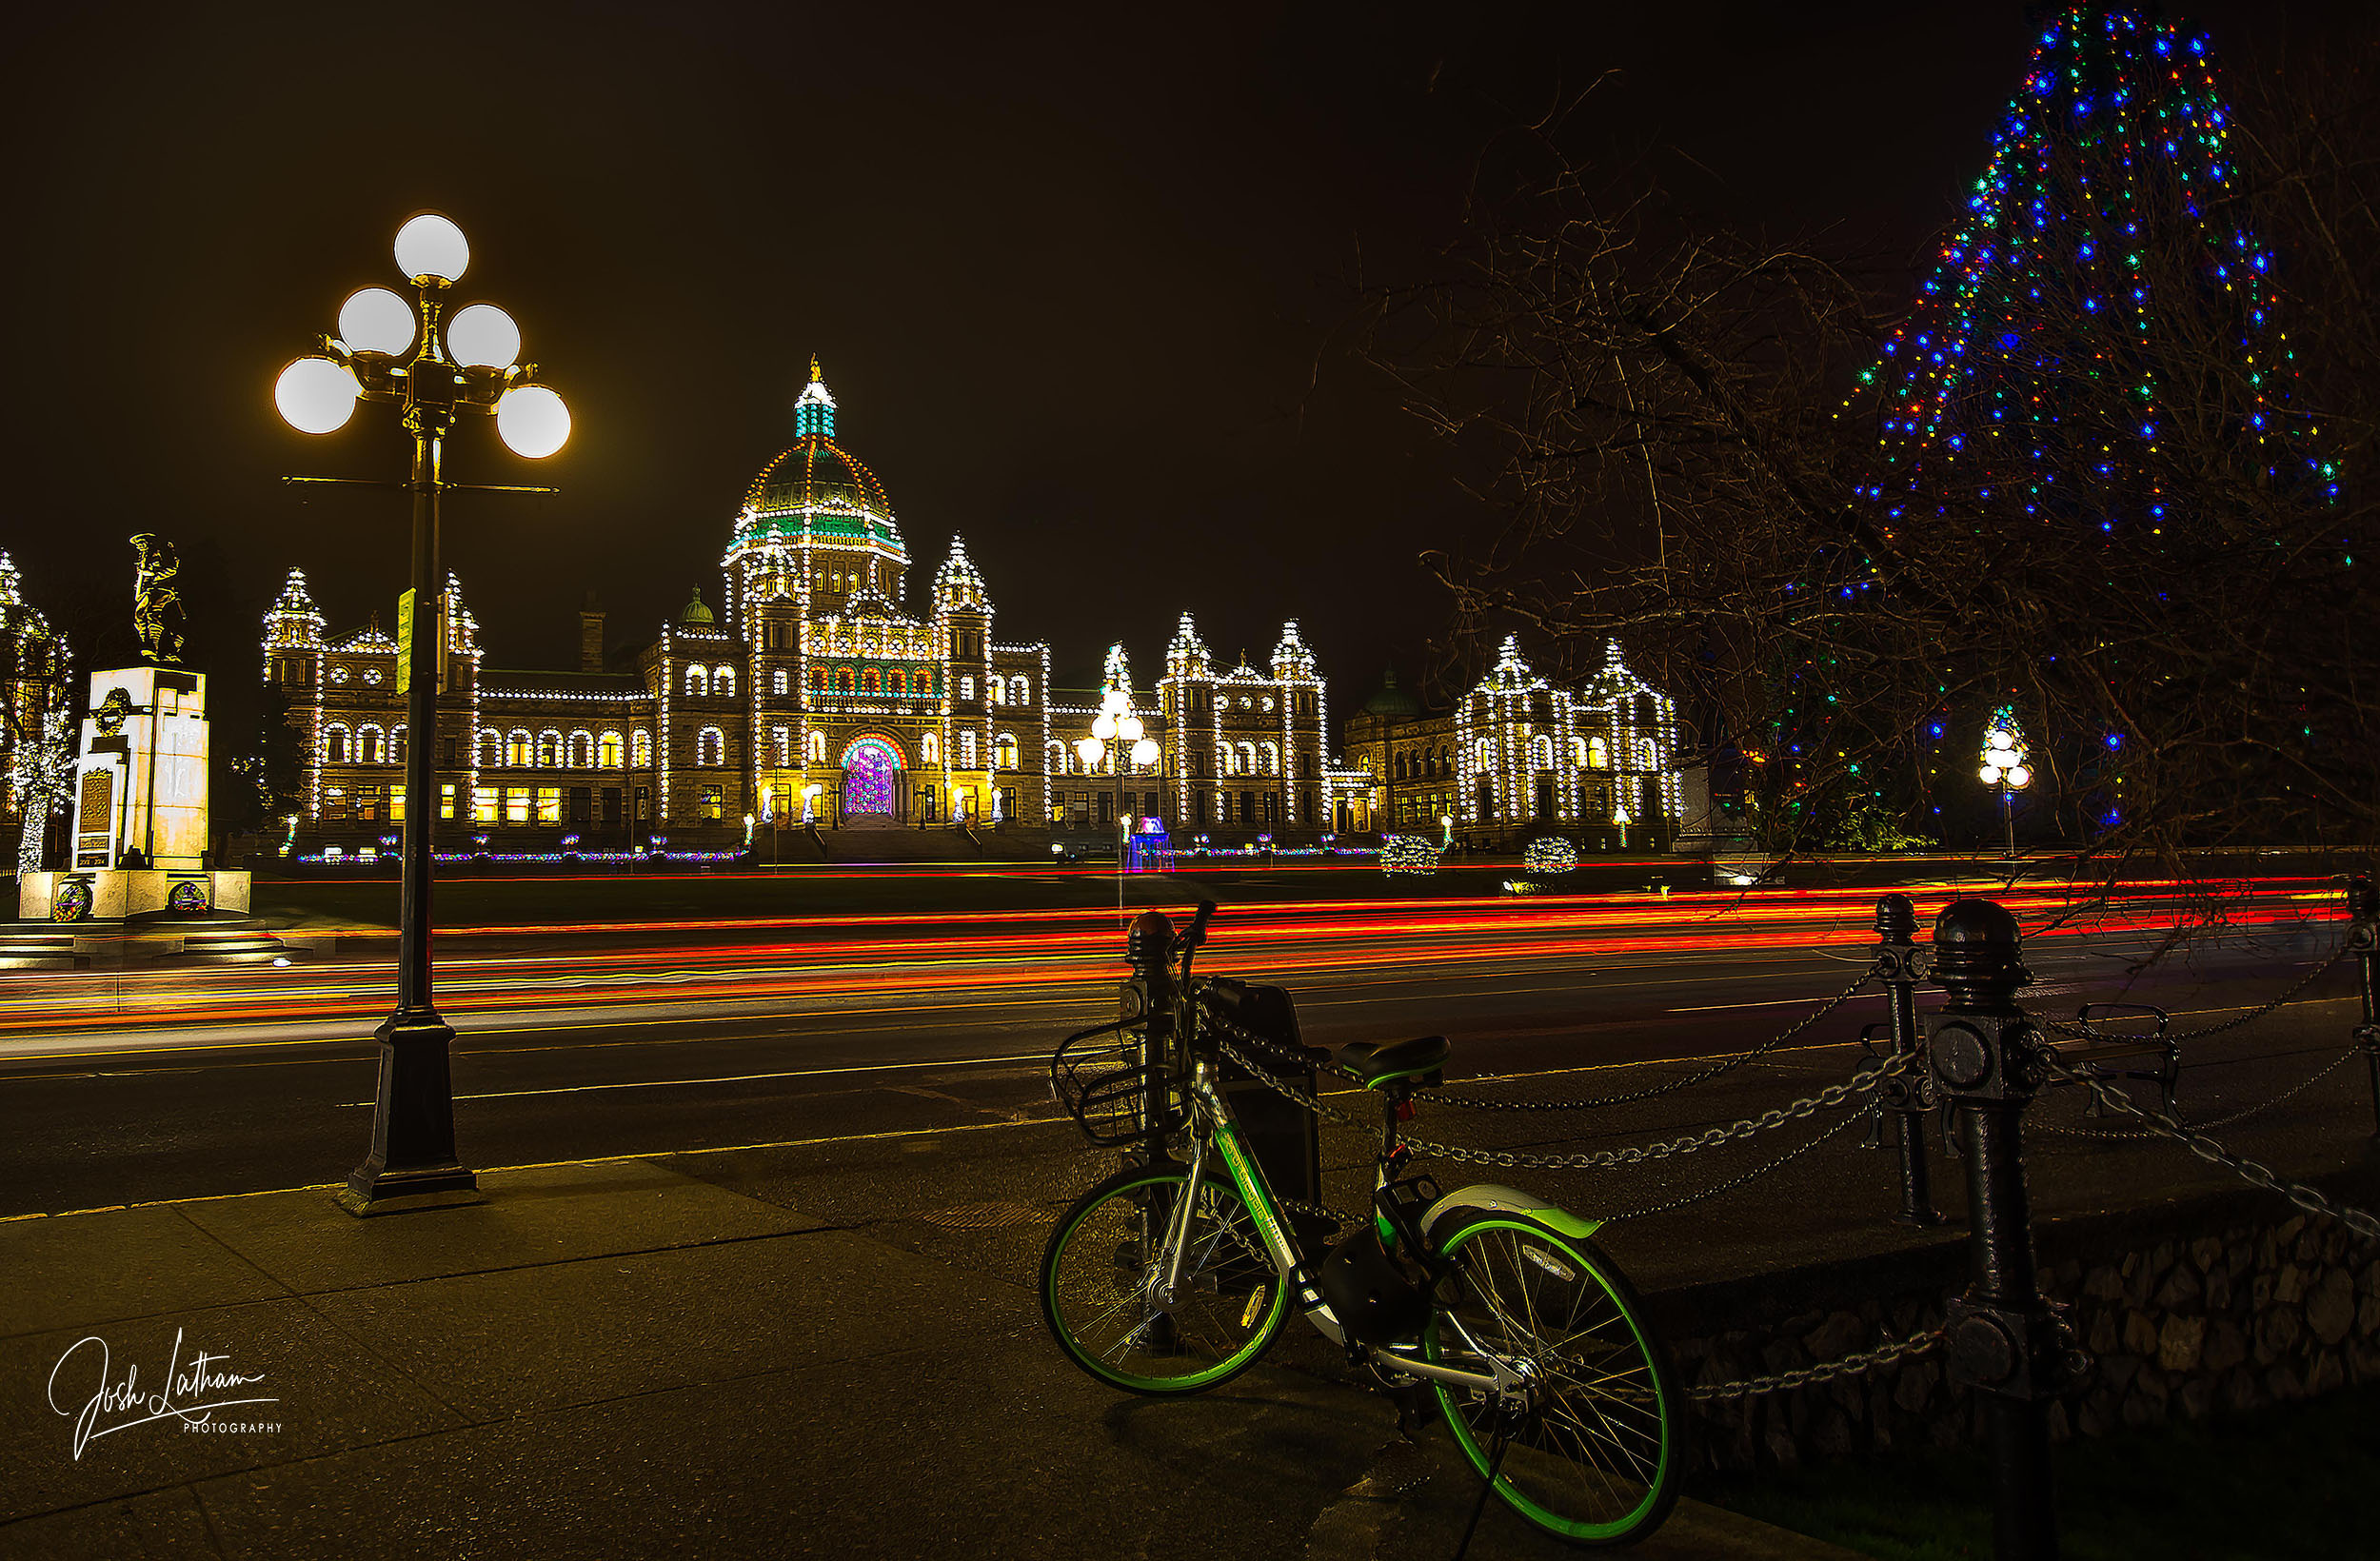 The Iconic Legislative Building in Victoria, BC, Canada